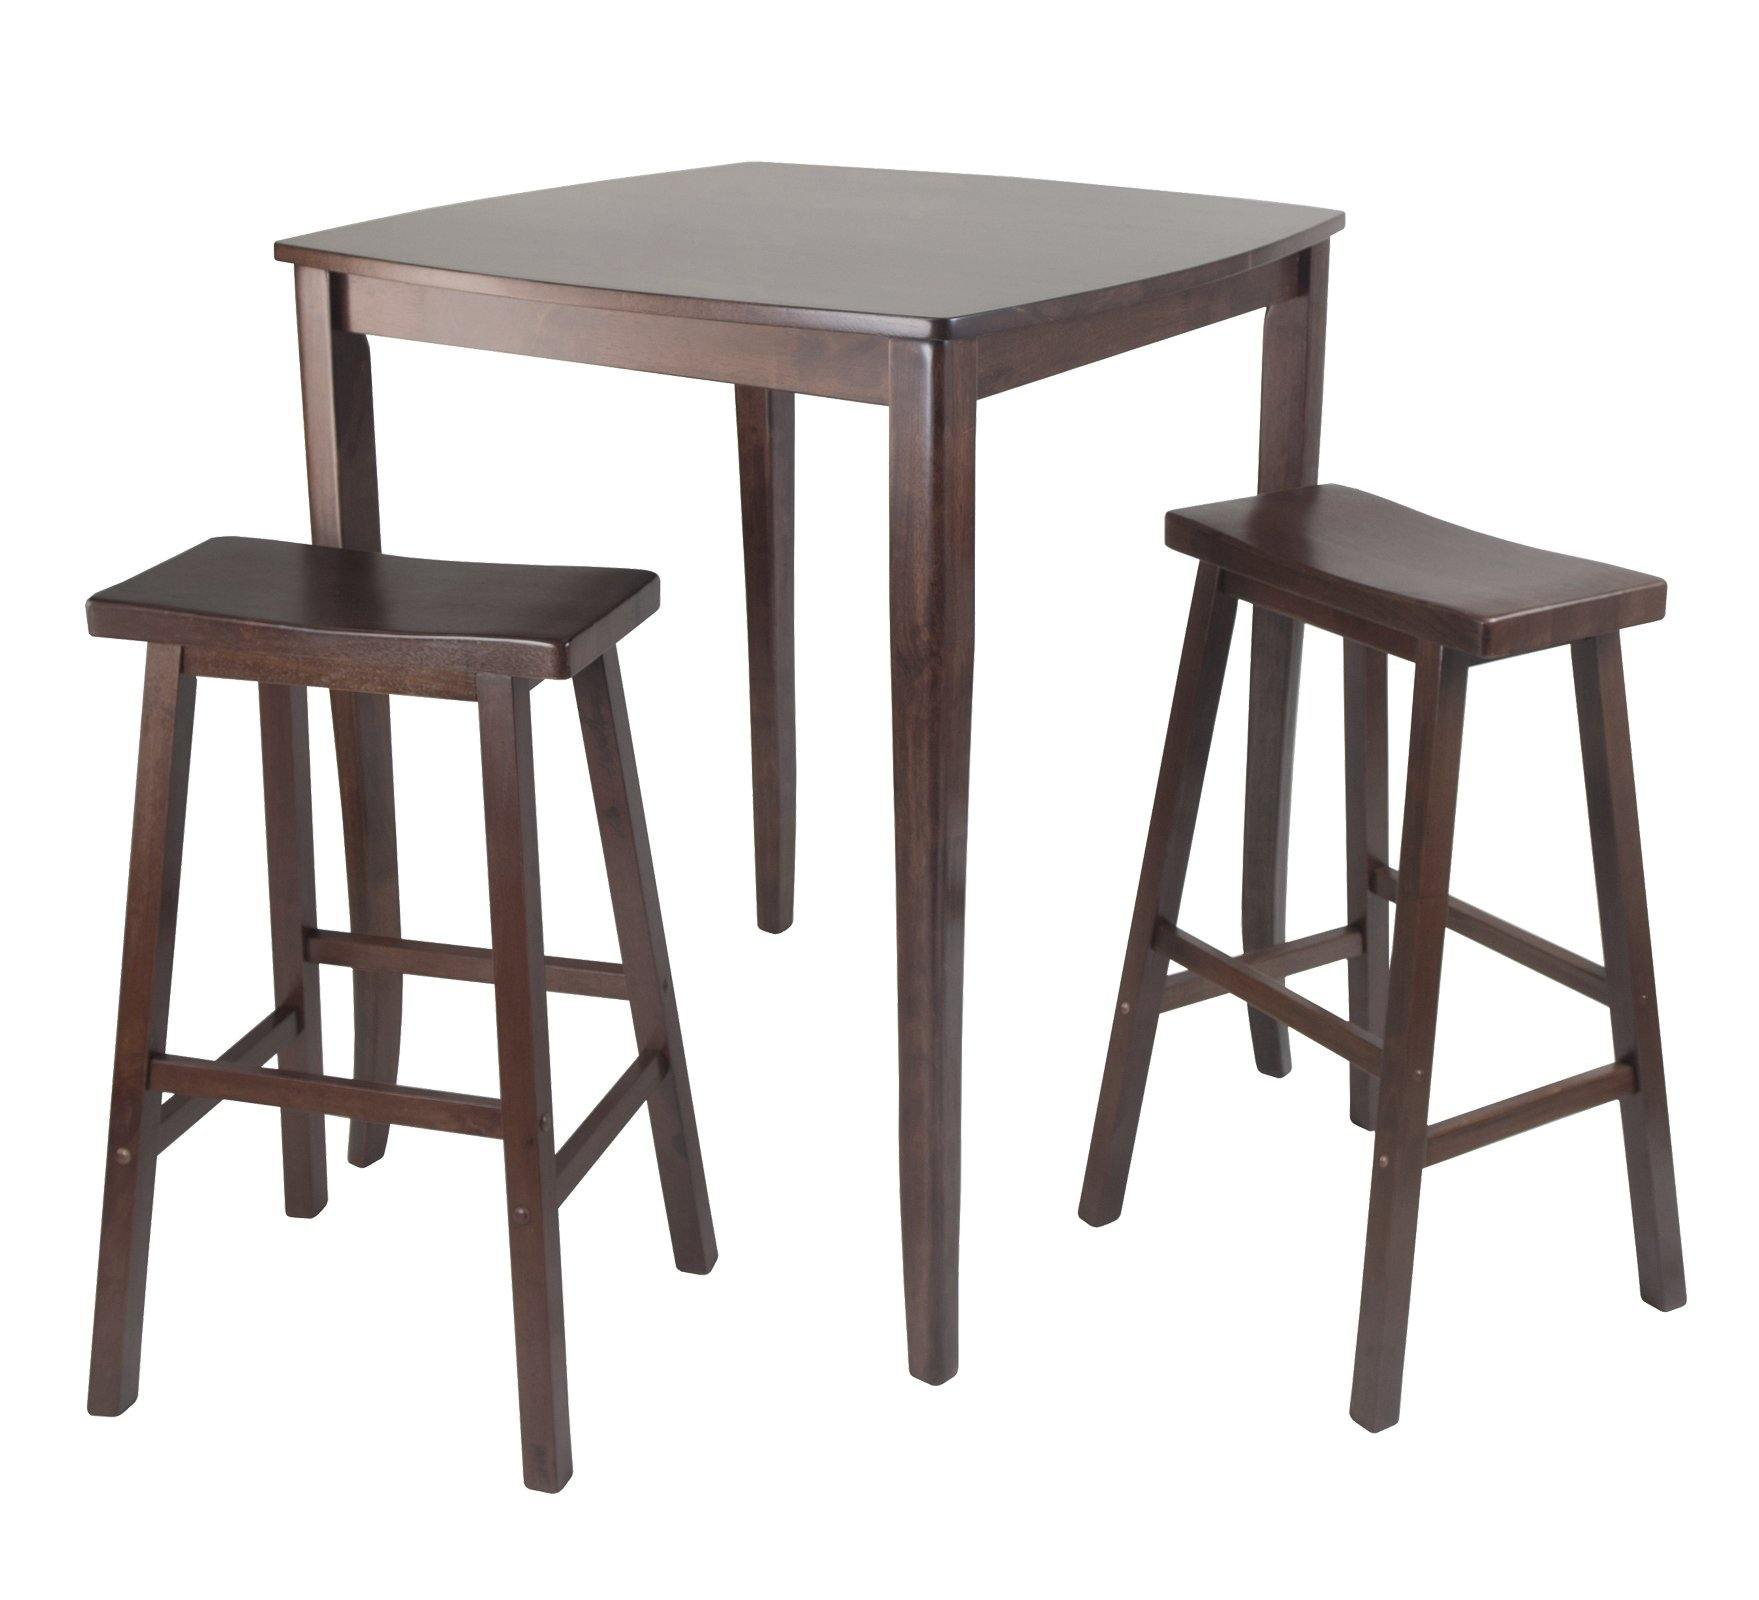 3-Pc Inglewood High/Pub Dining Table with Saddle Stool - My USA Furniture